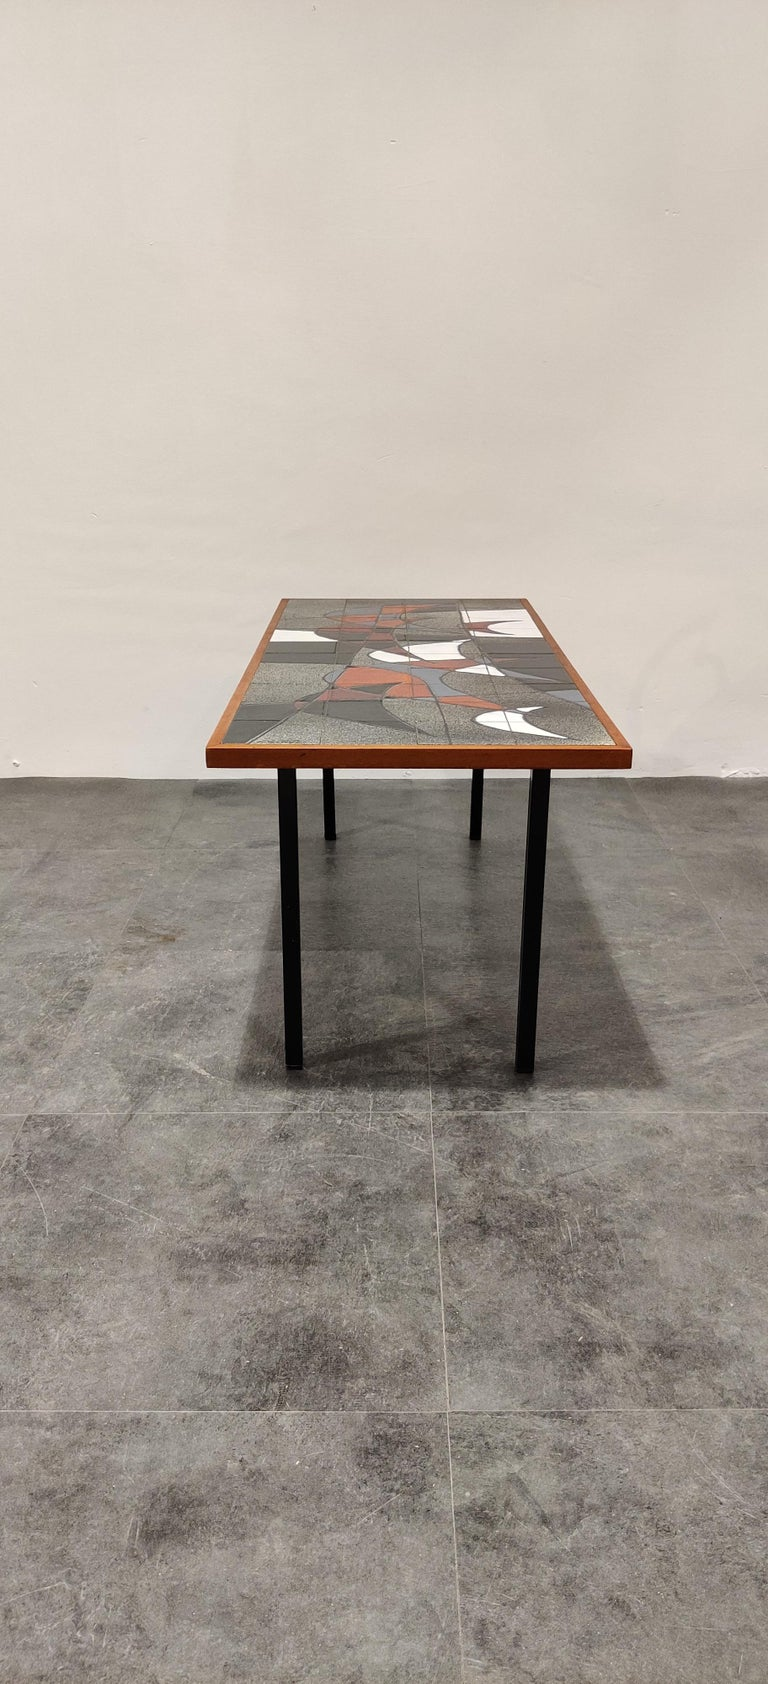 Midcentury Ceramic Coffee Table by Vigneron, 1960s For Sale 5